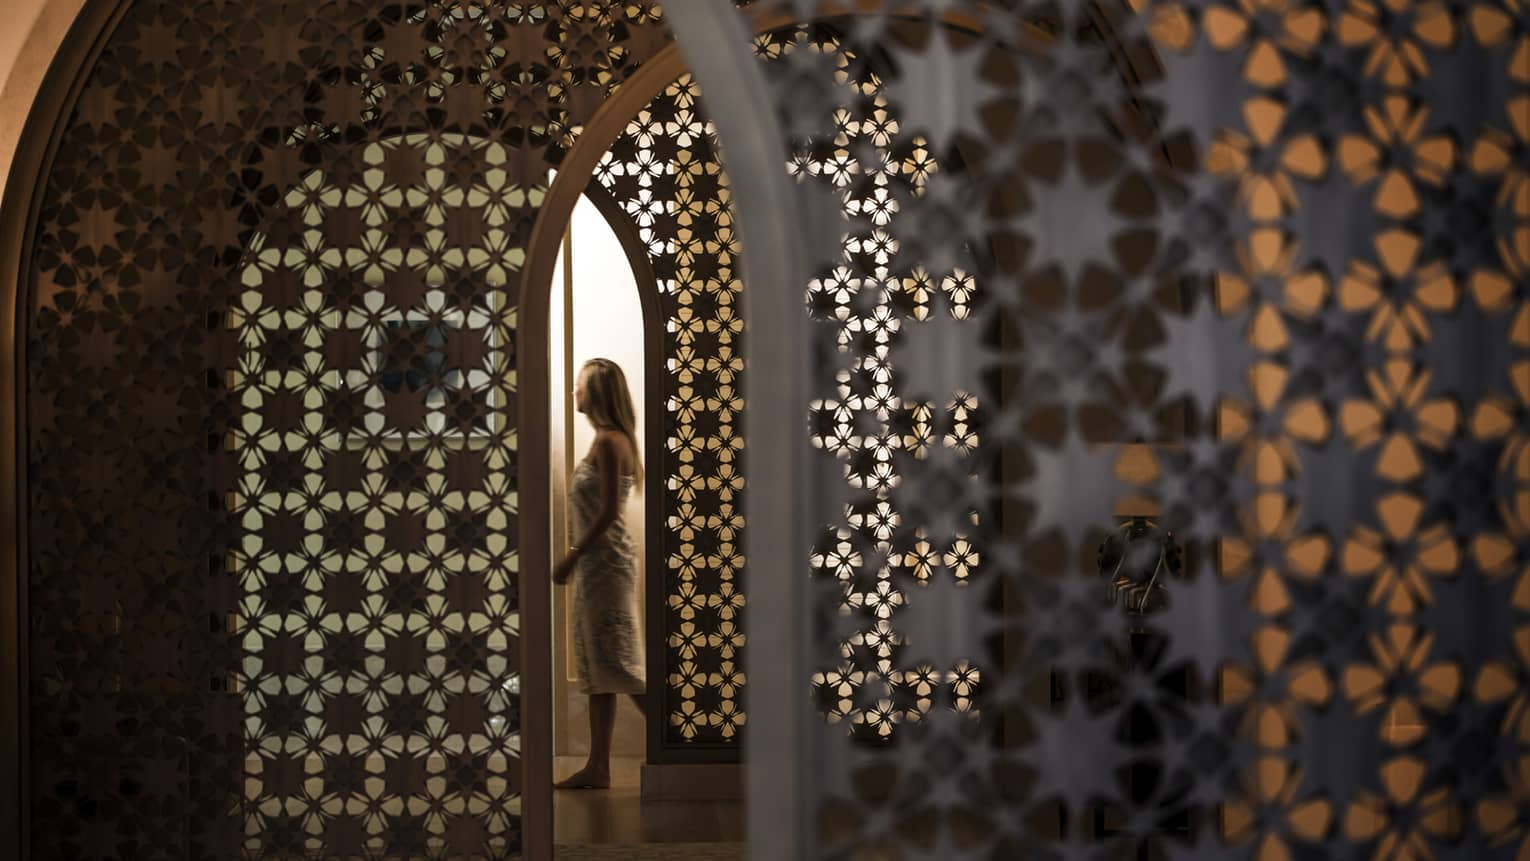 Woman in white wrap walks through dimly-lit decorative entranceway in hall